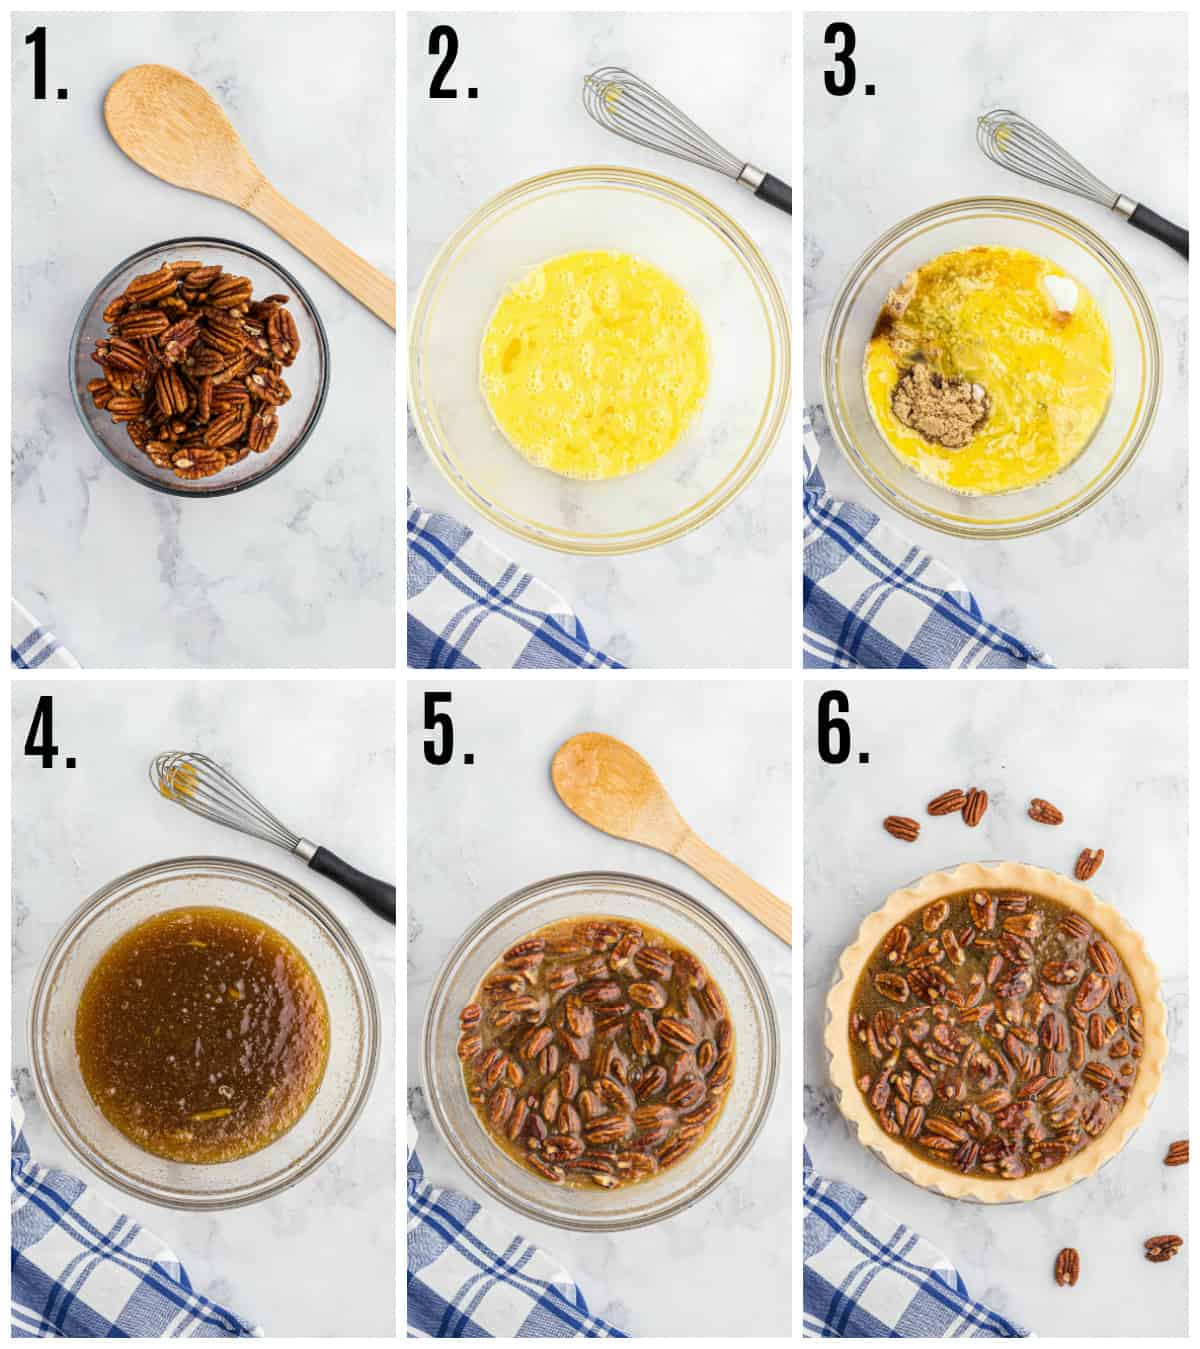 Step by step photos on how to make Bourbon Pecan Pie